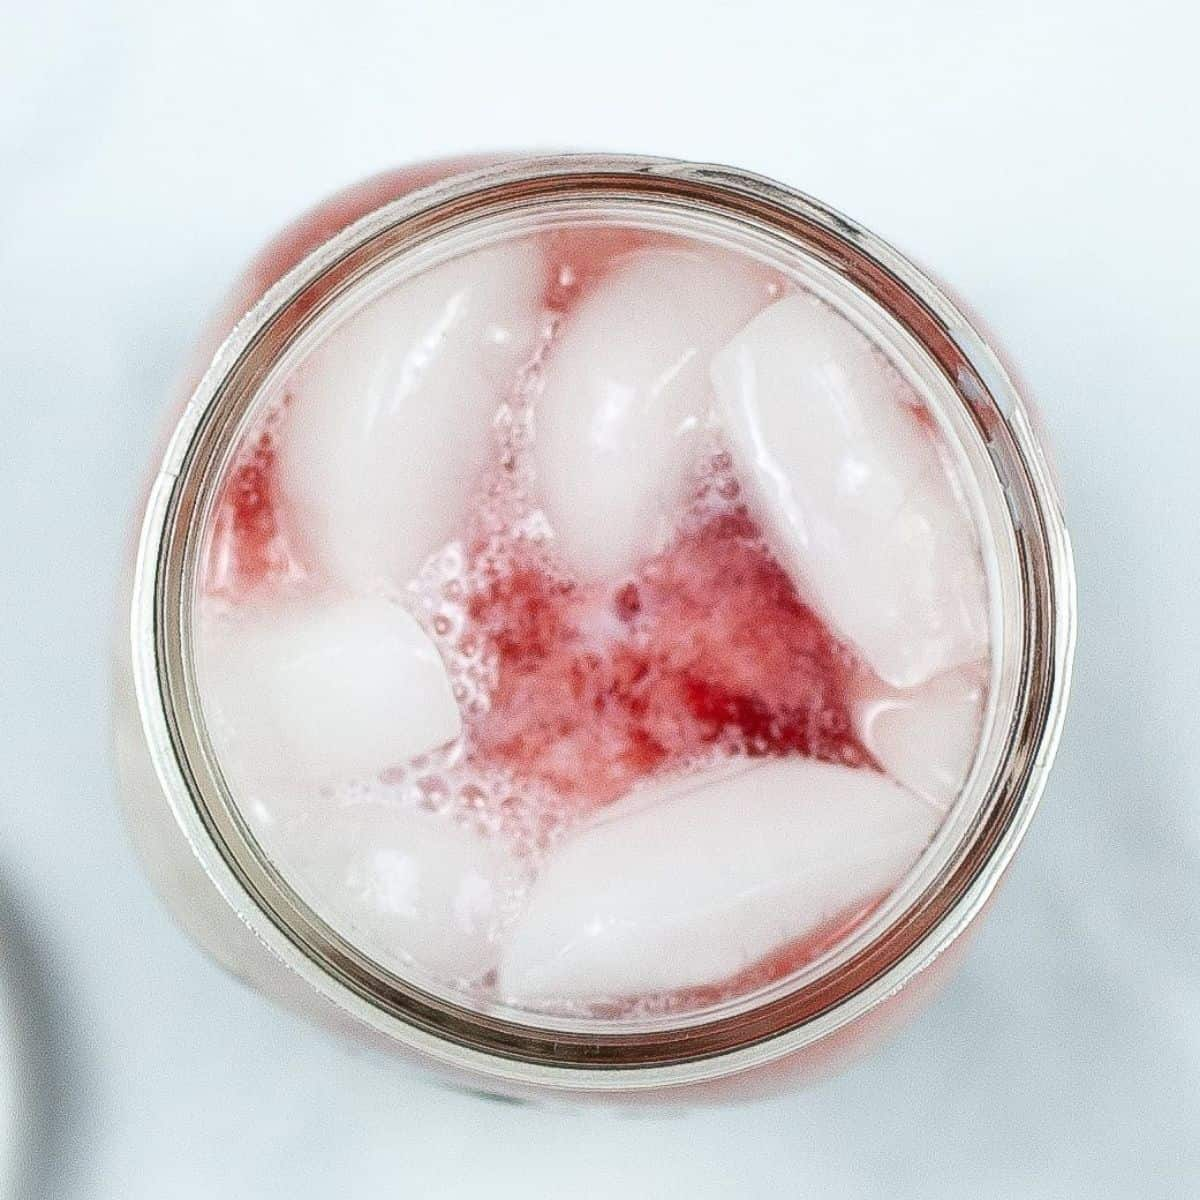 An overhead view of a mason jar with ice and pink tea.